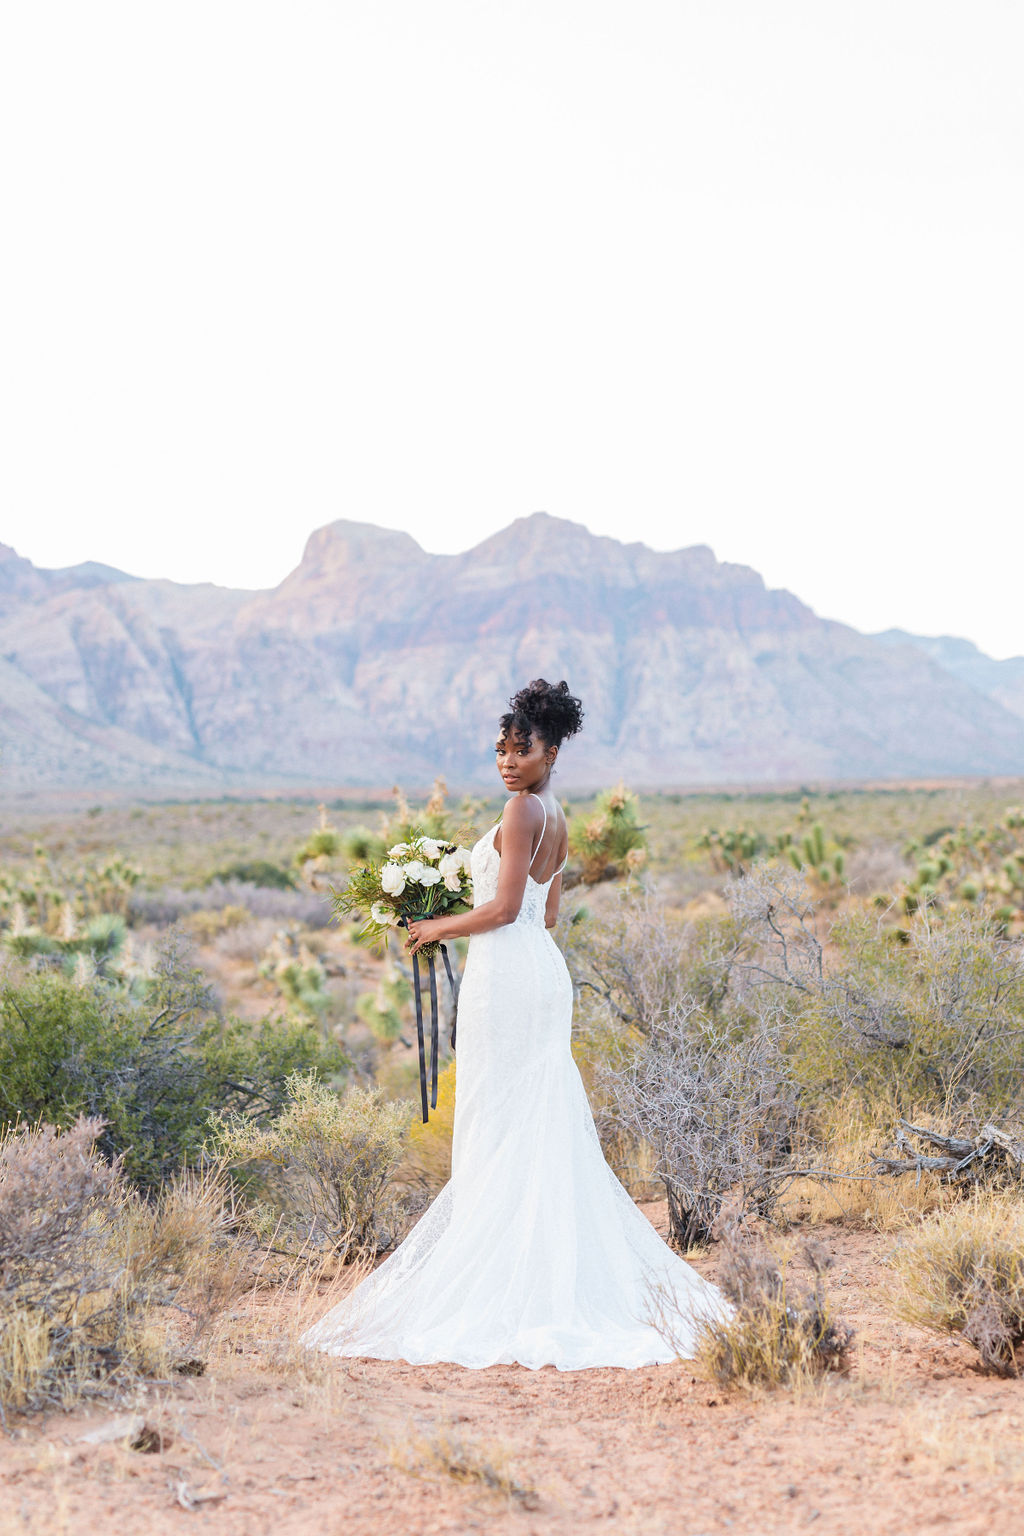 Edgy Romantic Wedding Red Rock Canyon Las Vegas Bride Elizabeth Burgi Photography 13